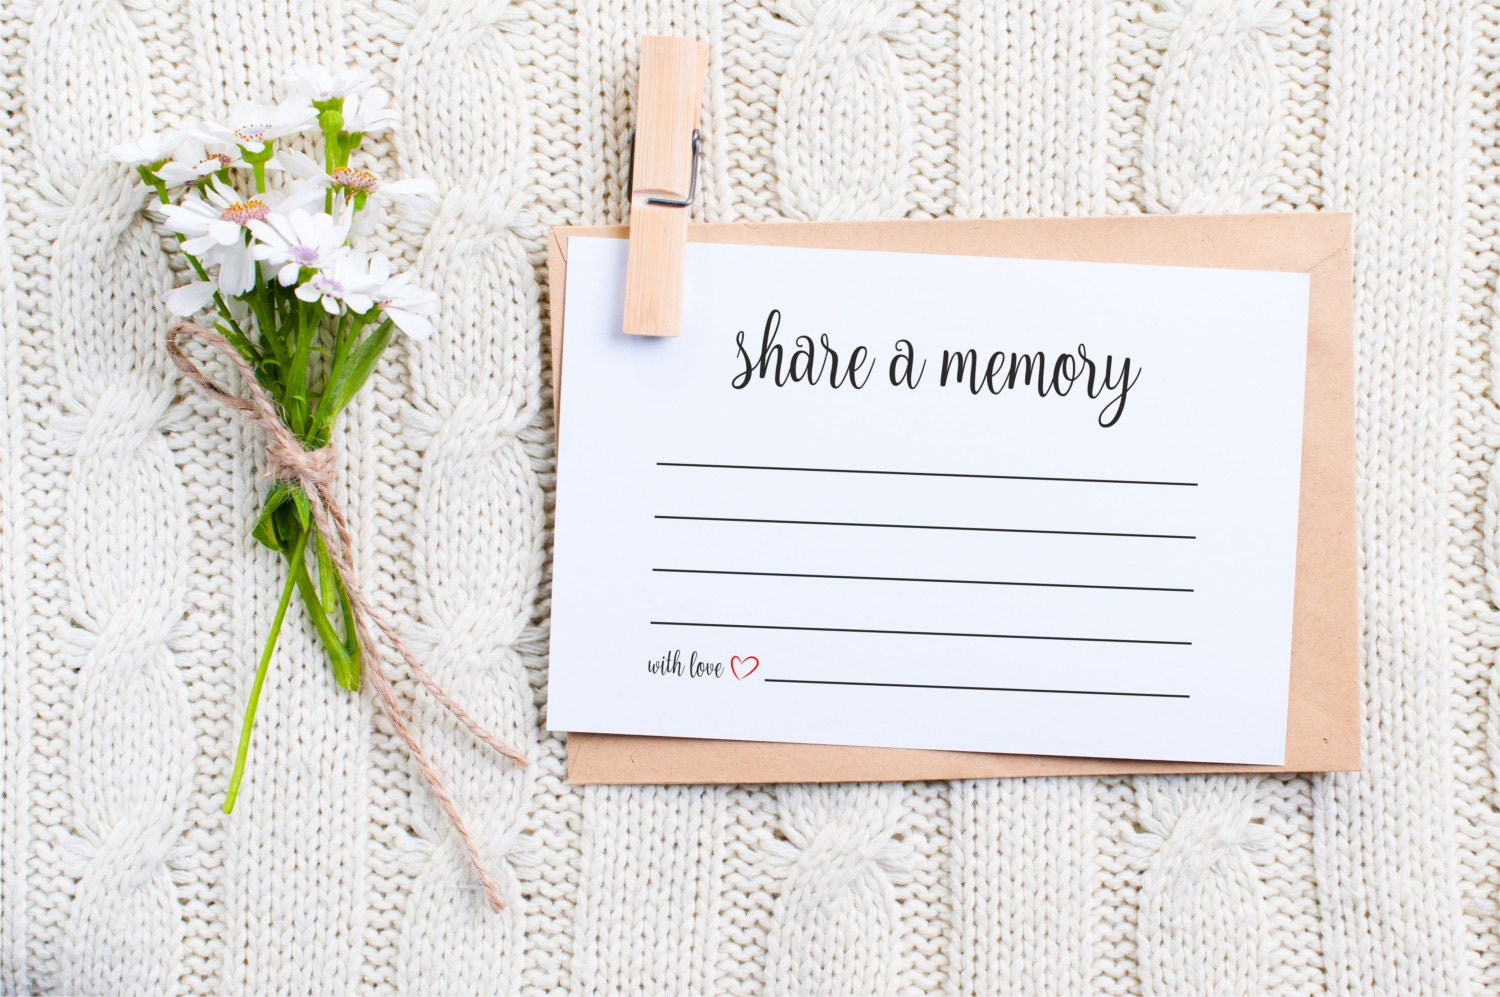 share a memory card memory cards share a memory printable